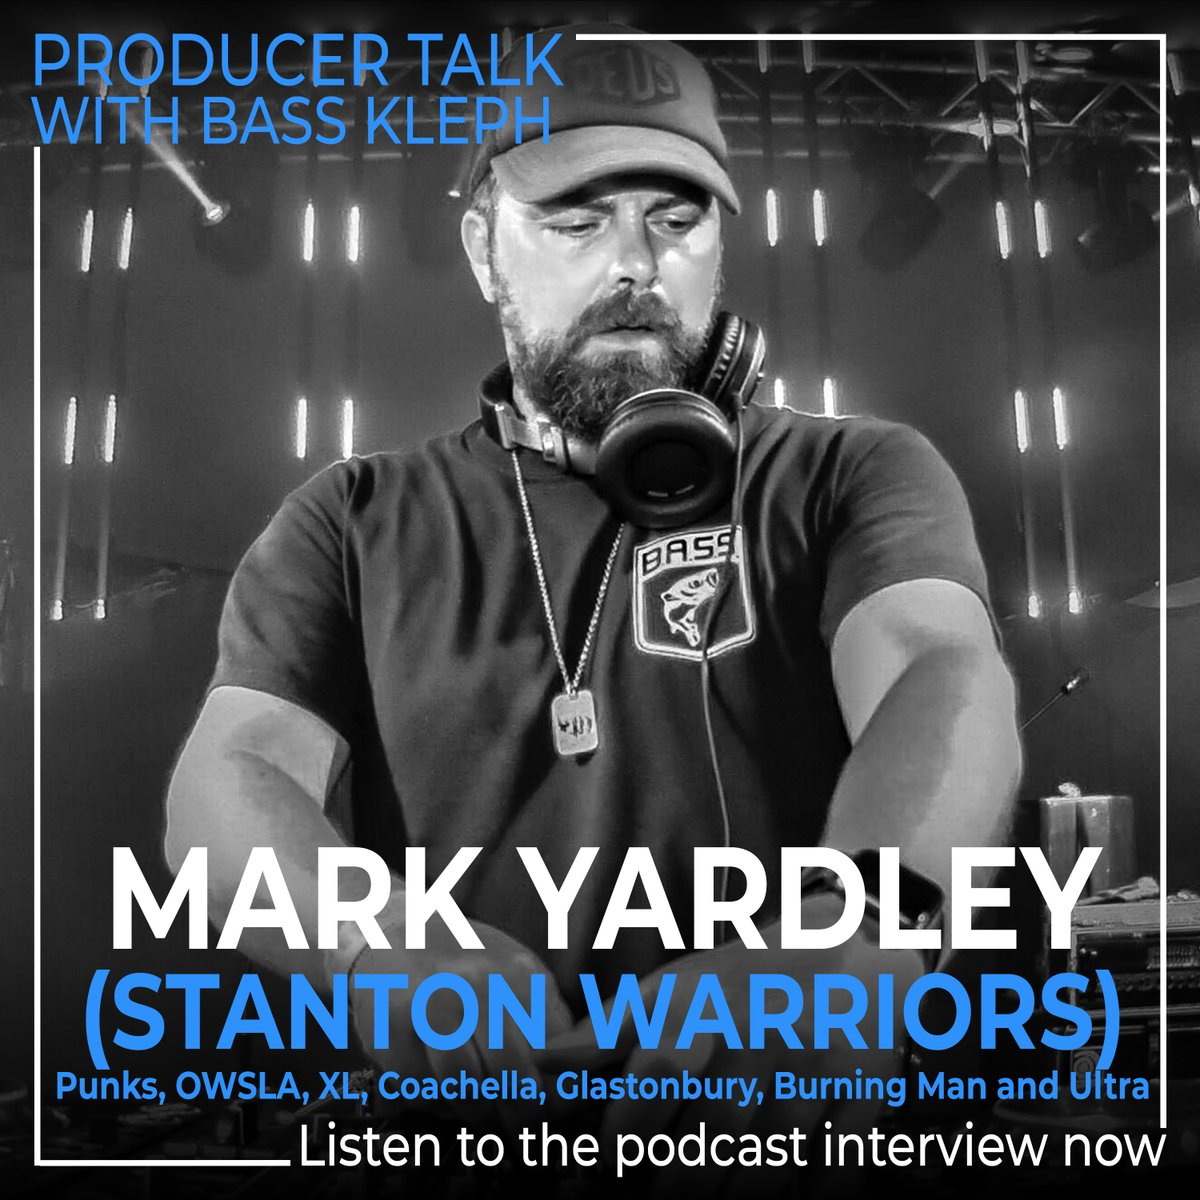 New podcast episode out now with Mark Yardley from The Stanton Warriors! https://soo.nr/w54j   #stantonwarriors #markyardley #musicproducer #musicproduction #producertalk #podcast #breakbeat #breaks #bassmusic #ableton #flstudio #logicpro #producerlife #studiolifepic.twitter.com/0RfpNUiXX6